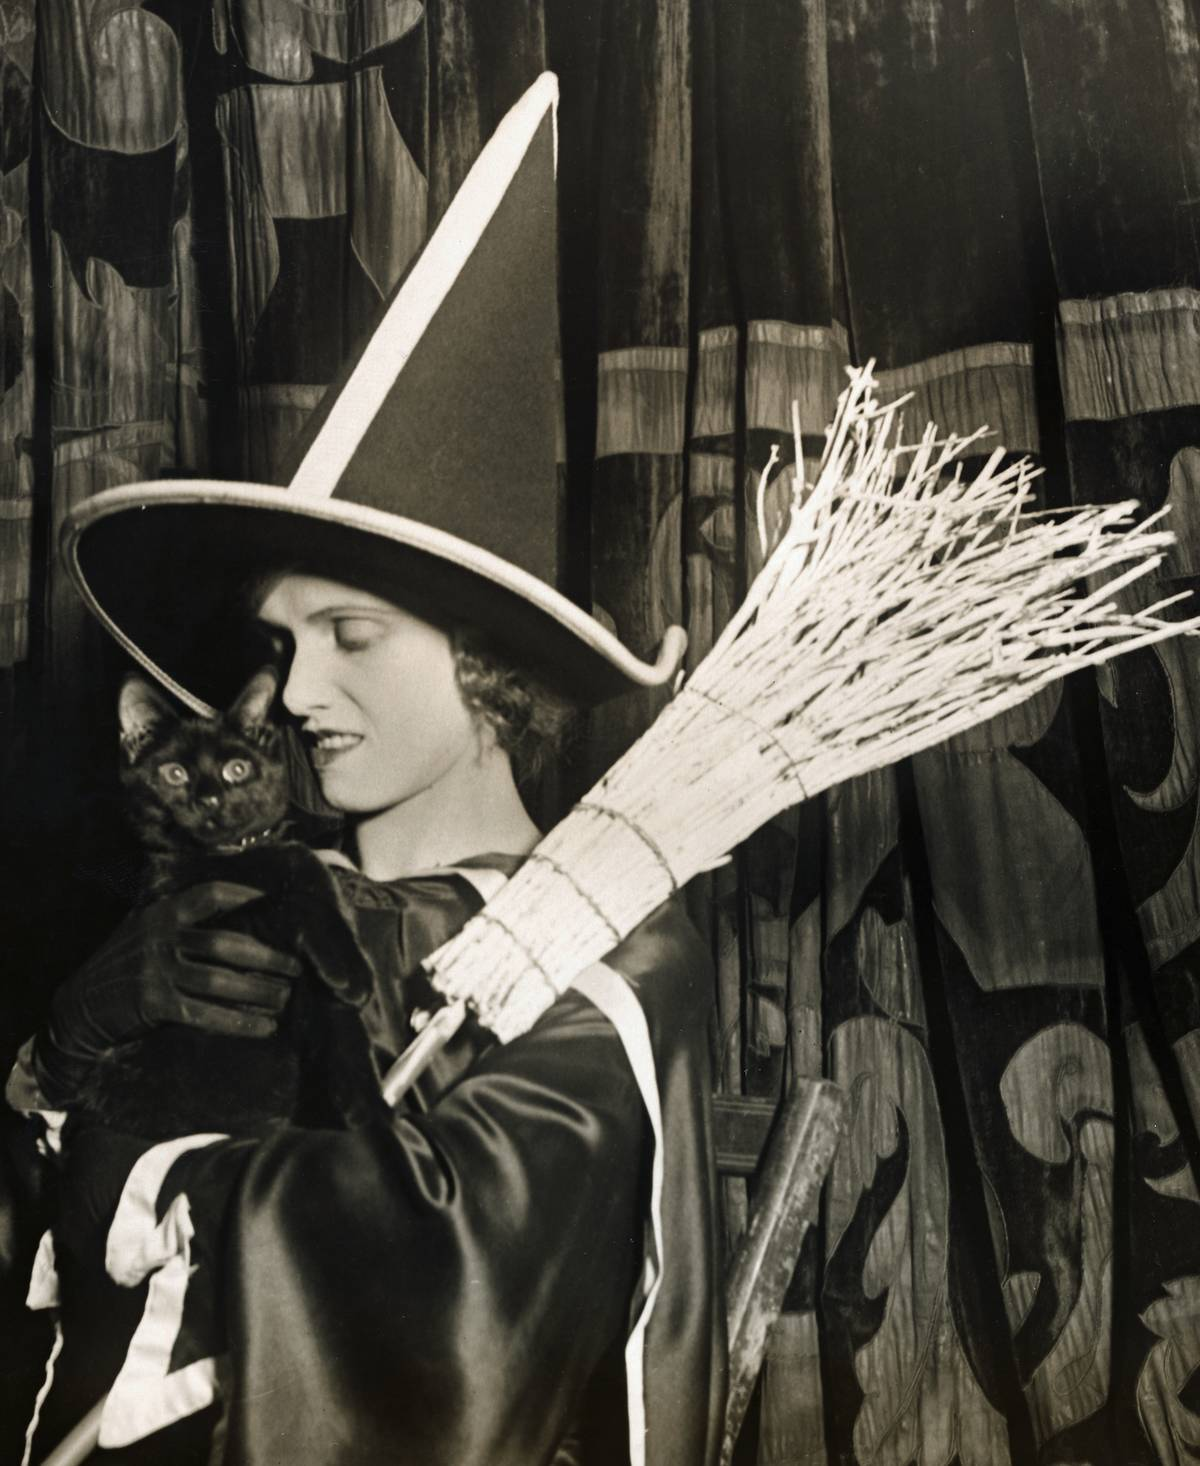 A woman wearing a witch costume, holding a straw broom and a black cat